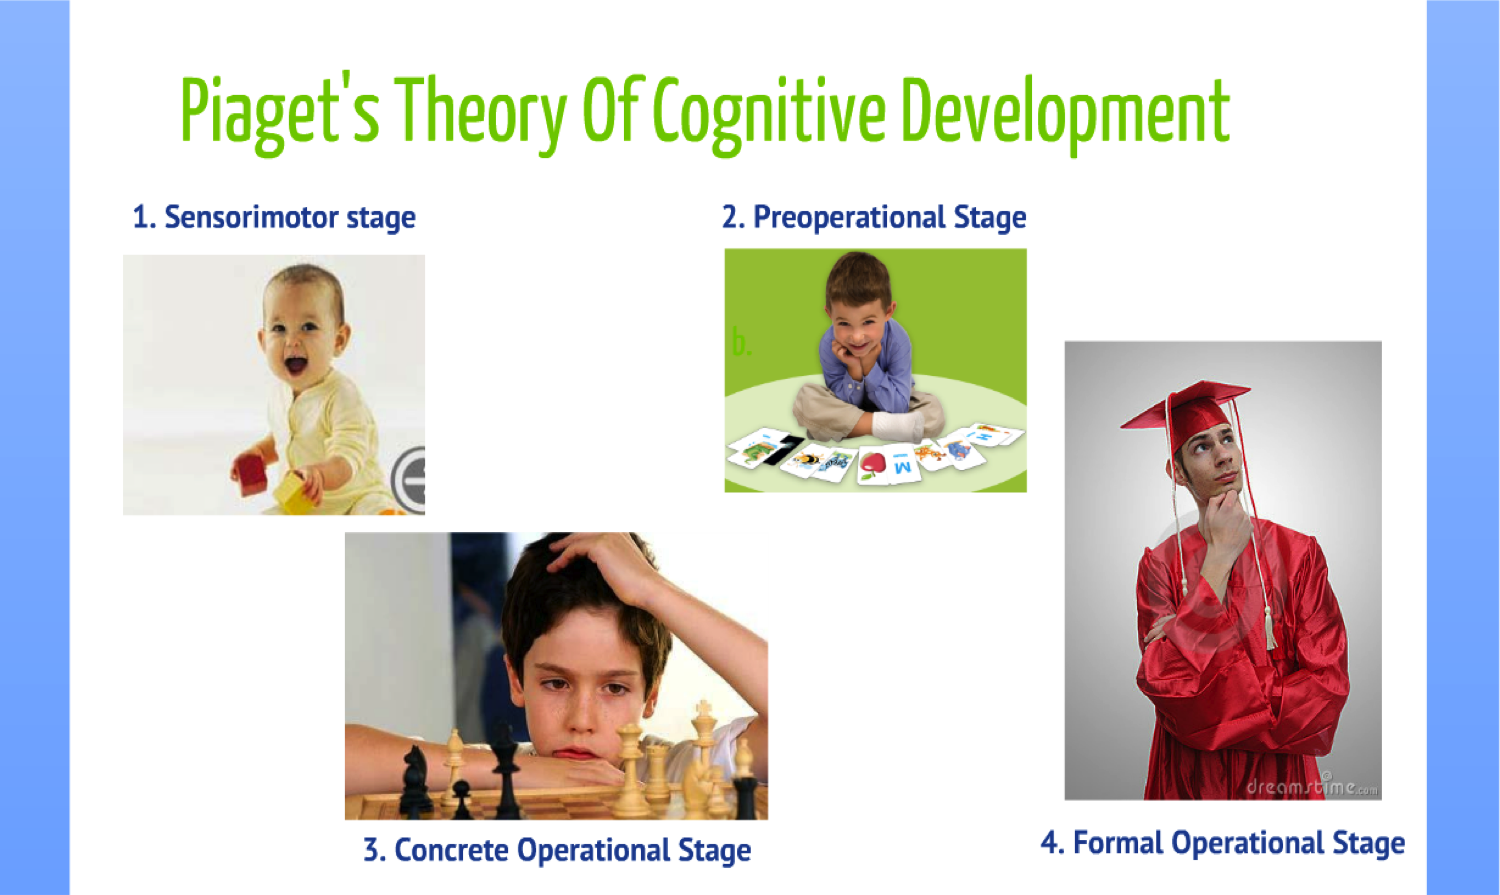 piaget theory of cognitive development essay evaluating and comparing two theories of cognitive development cognitive development essays words